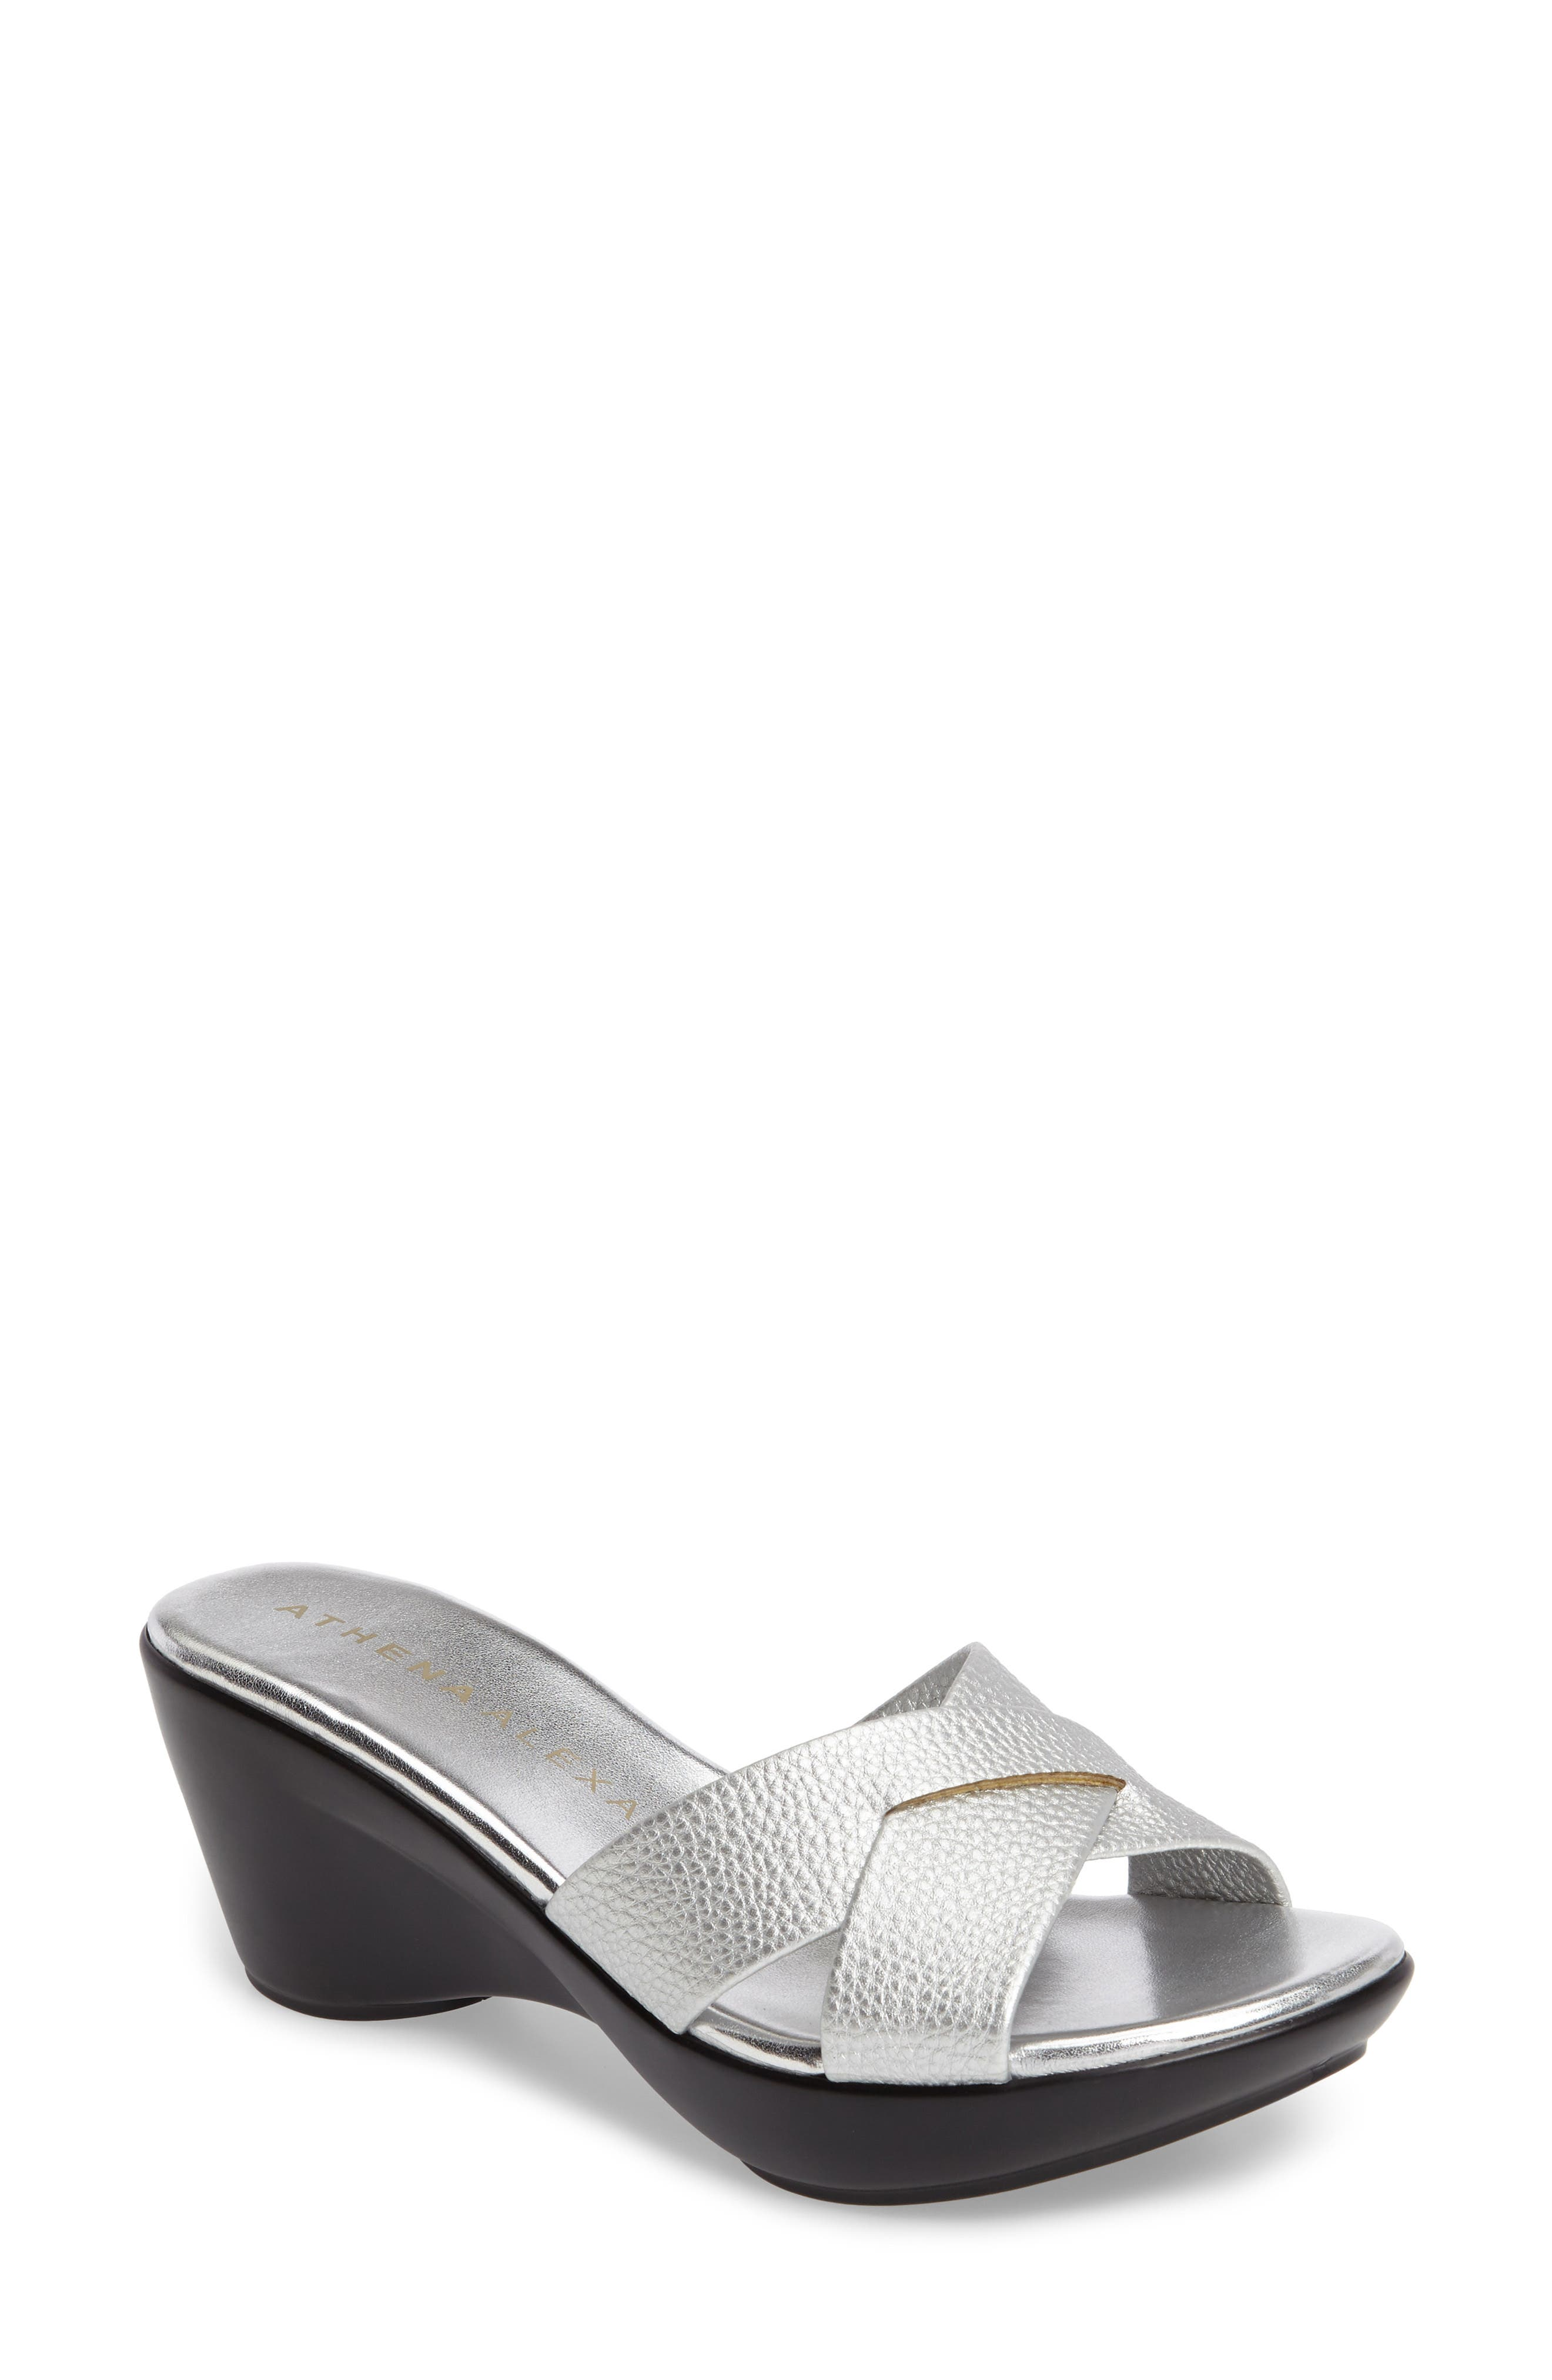 Verna Wedge Slide Sandal,                             Main thumbnail 1, color,                             SILVER FAUX LEATHER